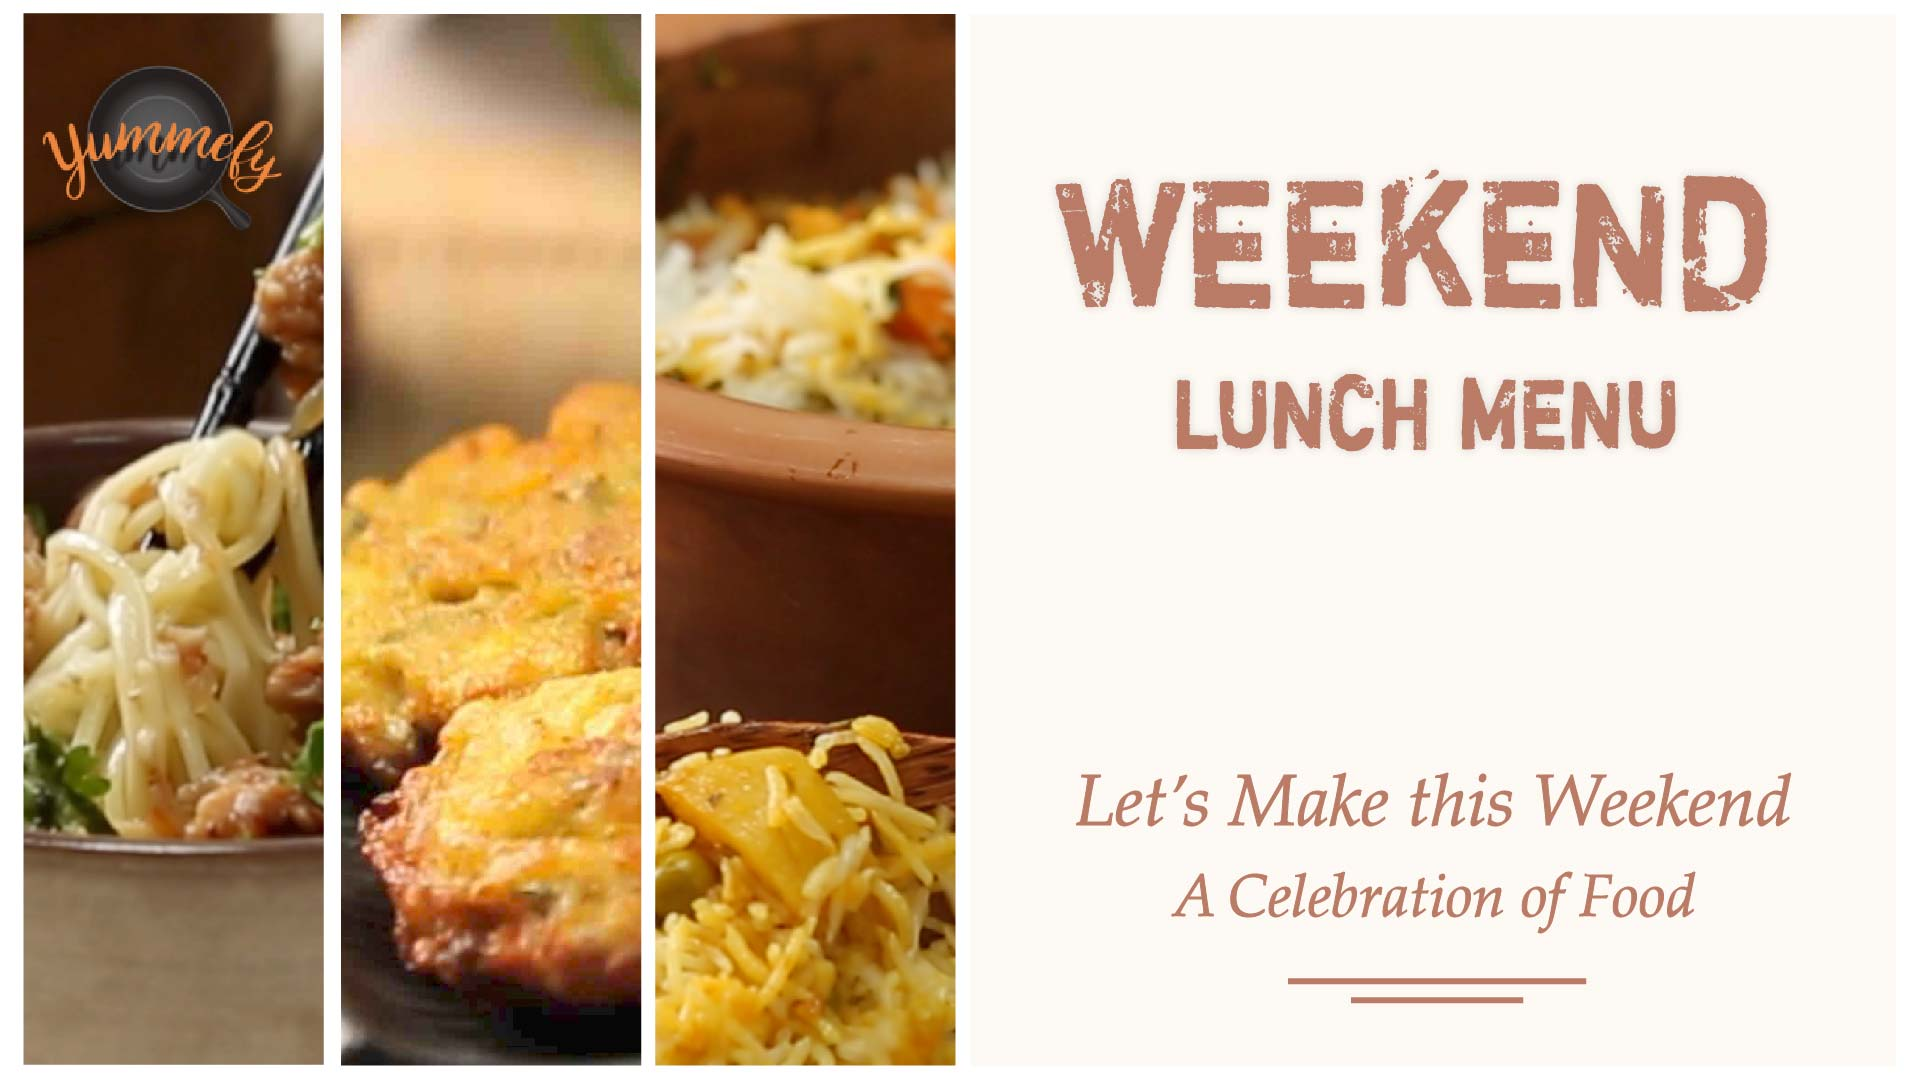 Weekend Lunch Menu | Celebration of Food